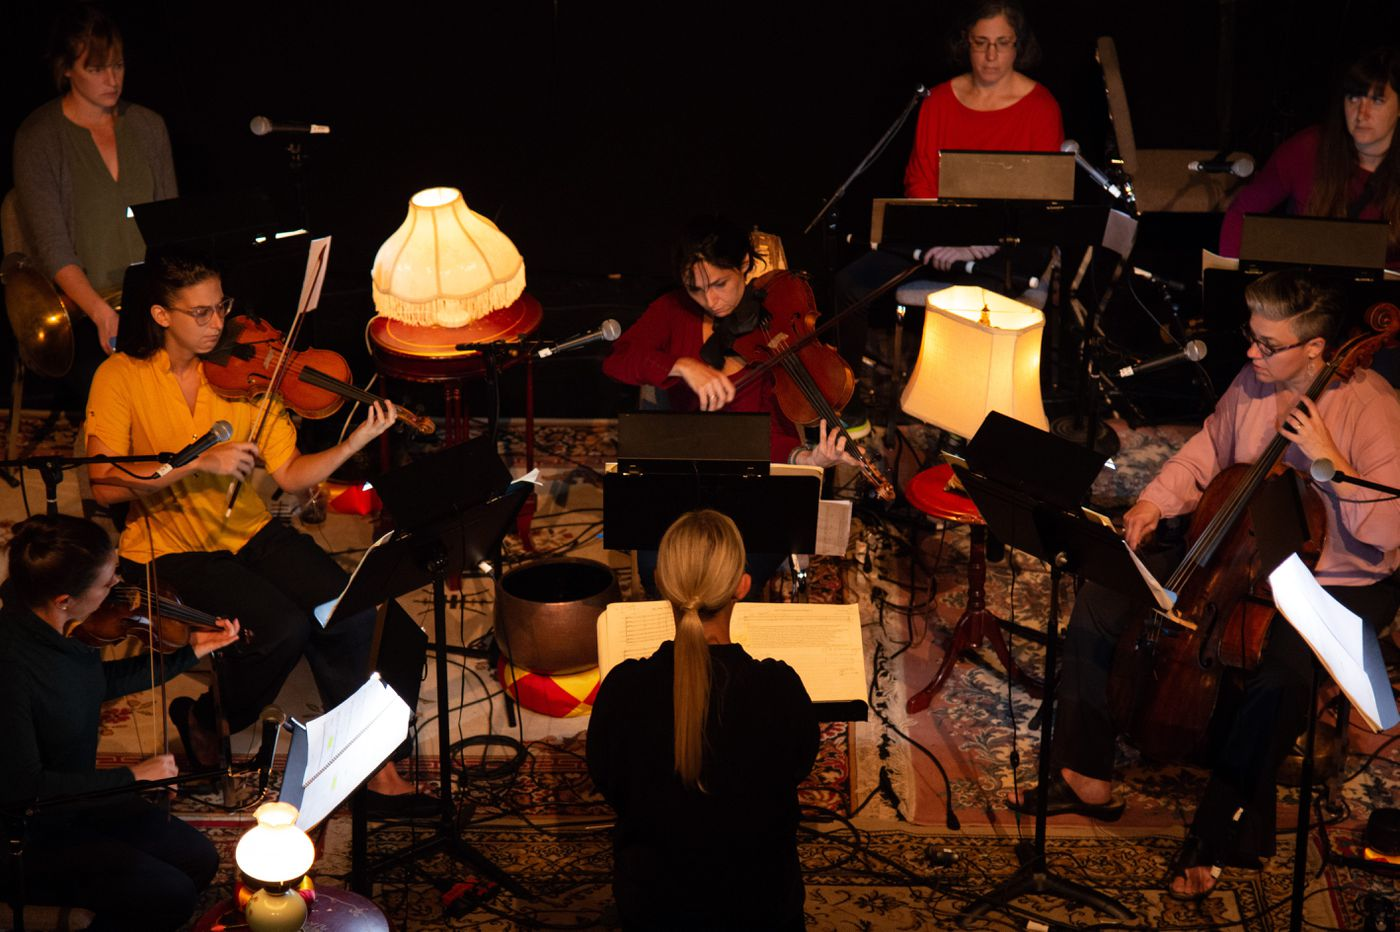 'Songs of Wars I Have Seen' at FringeArts: A strangely consoling piece about turmoil